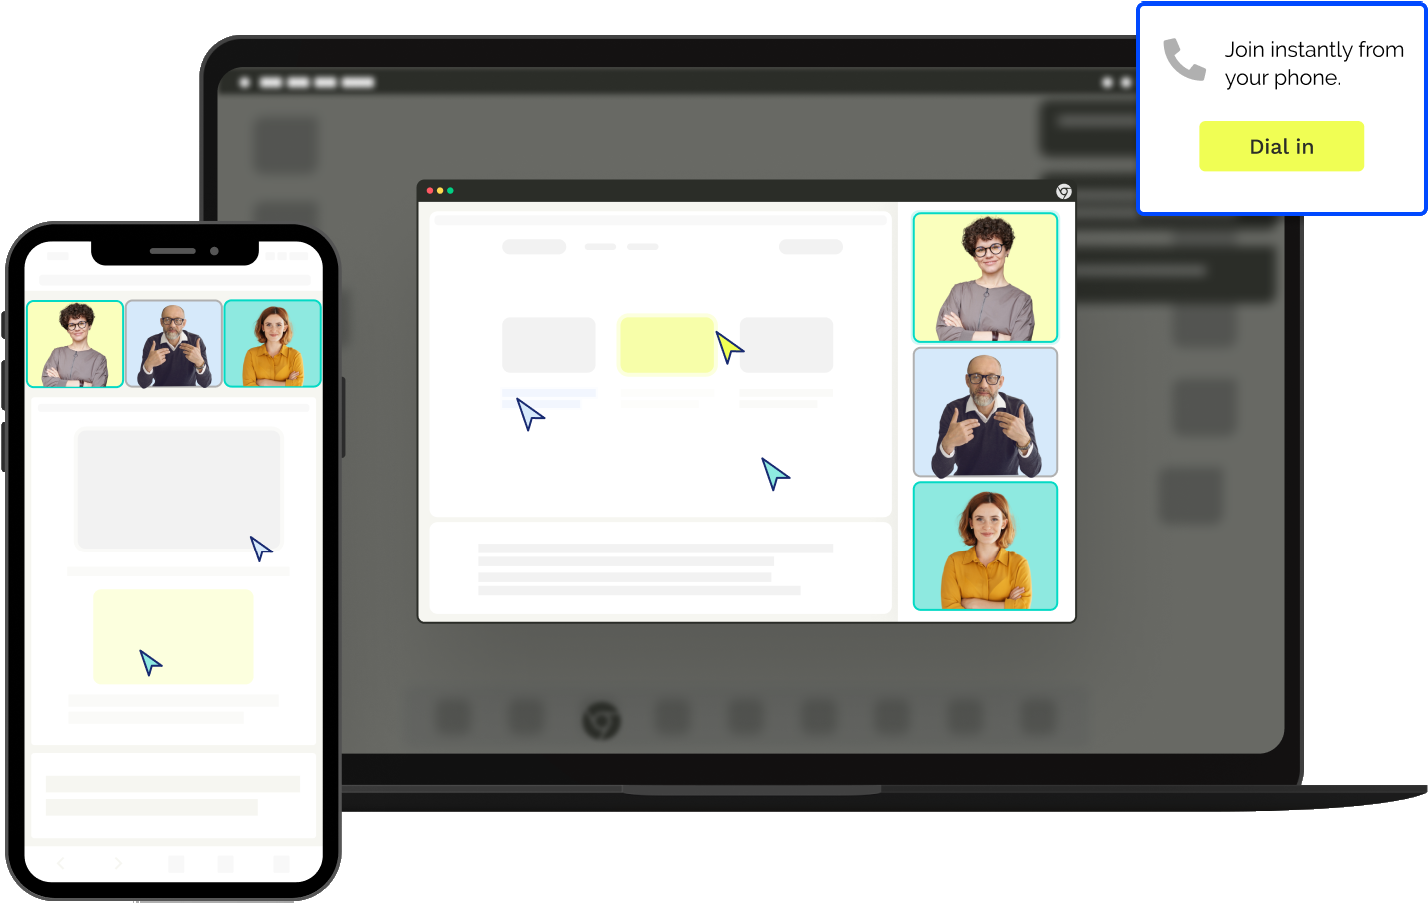 Make it easy for anyone to join a meeting instantly, from anywhere. High quality & secure meetings via phone or computer.